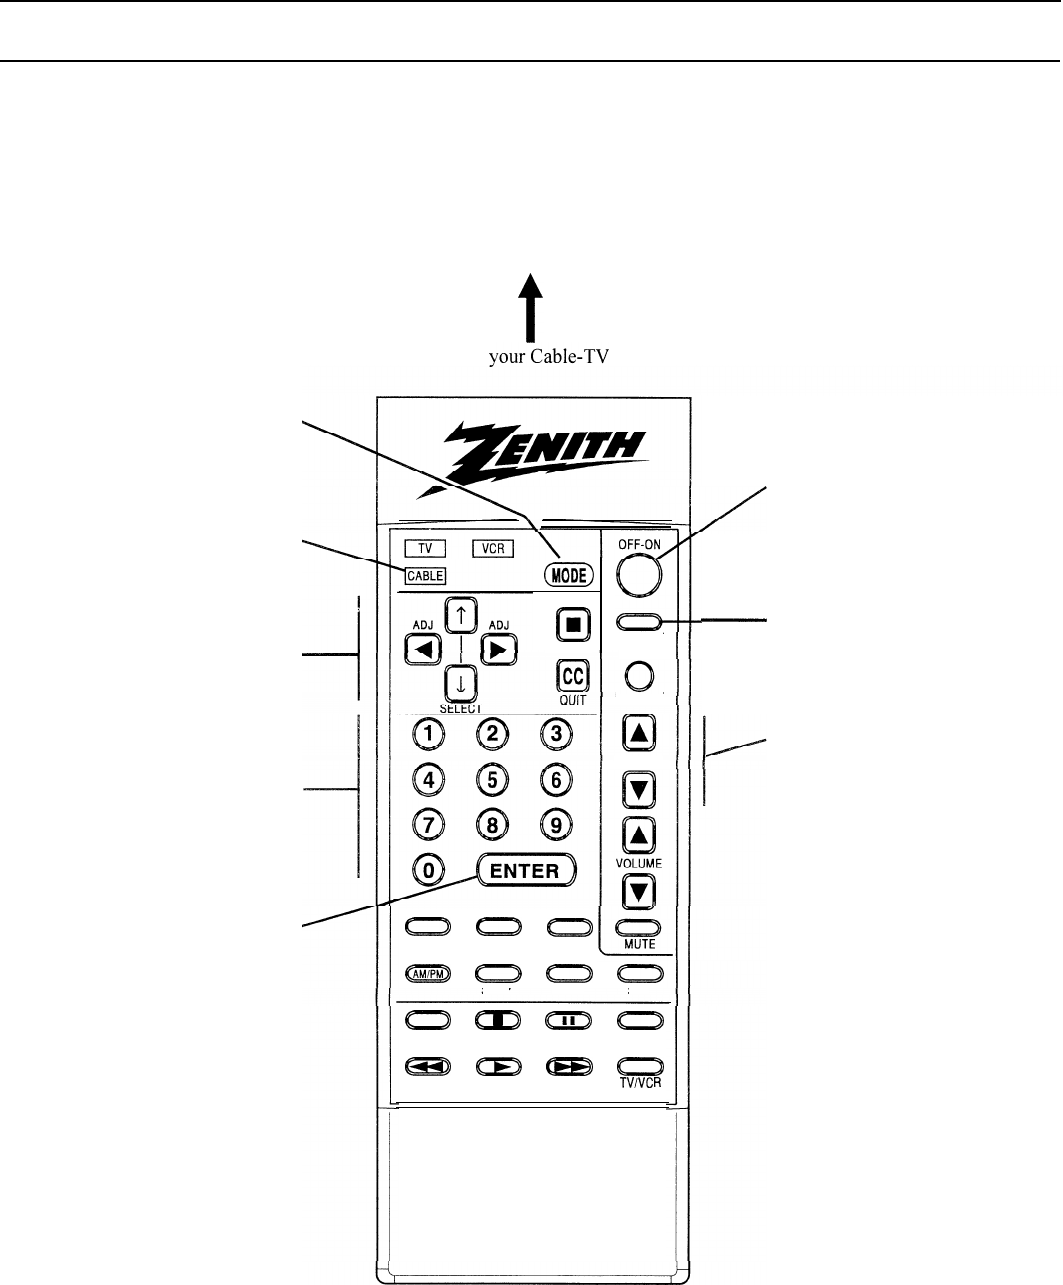 Page 4 Of Zenith Universal Remote Mbr User Guide